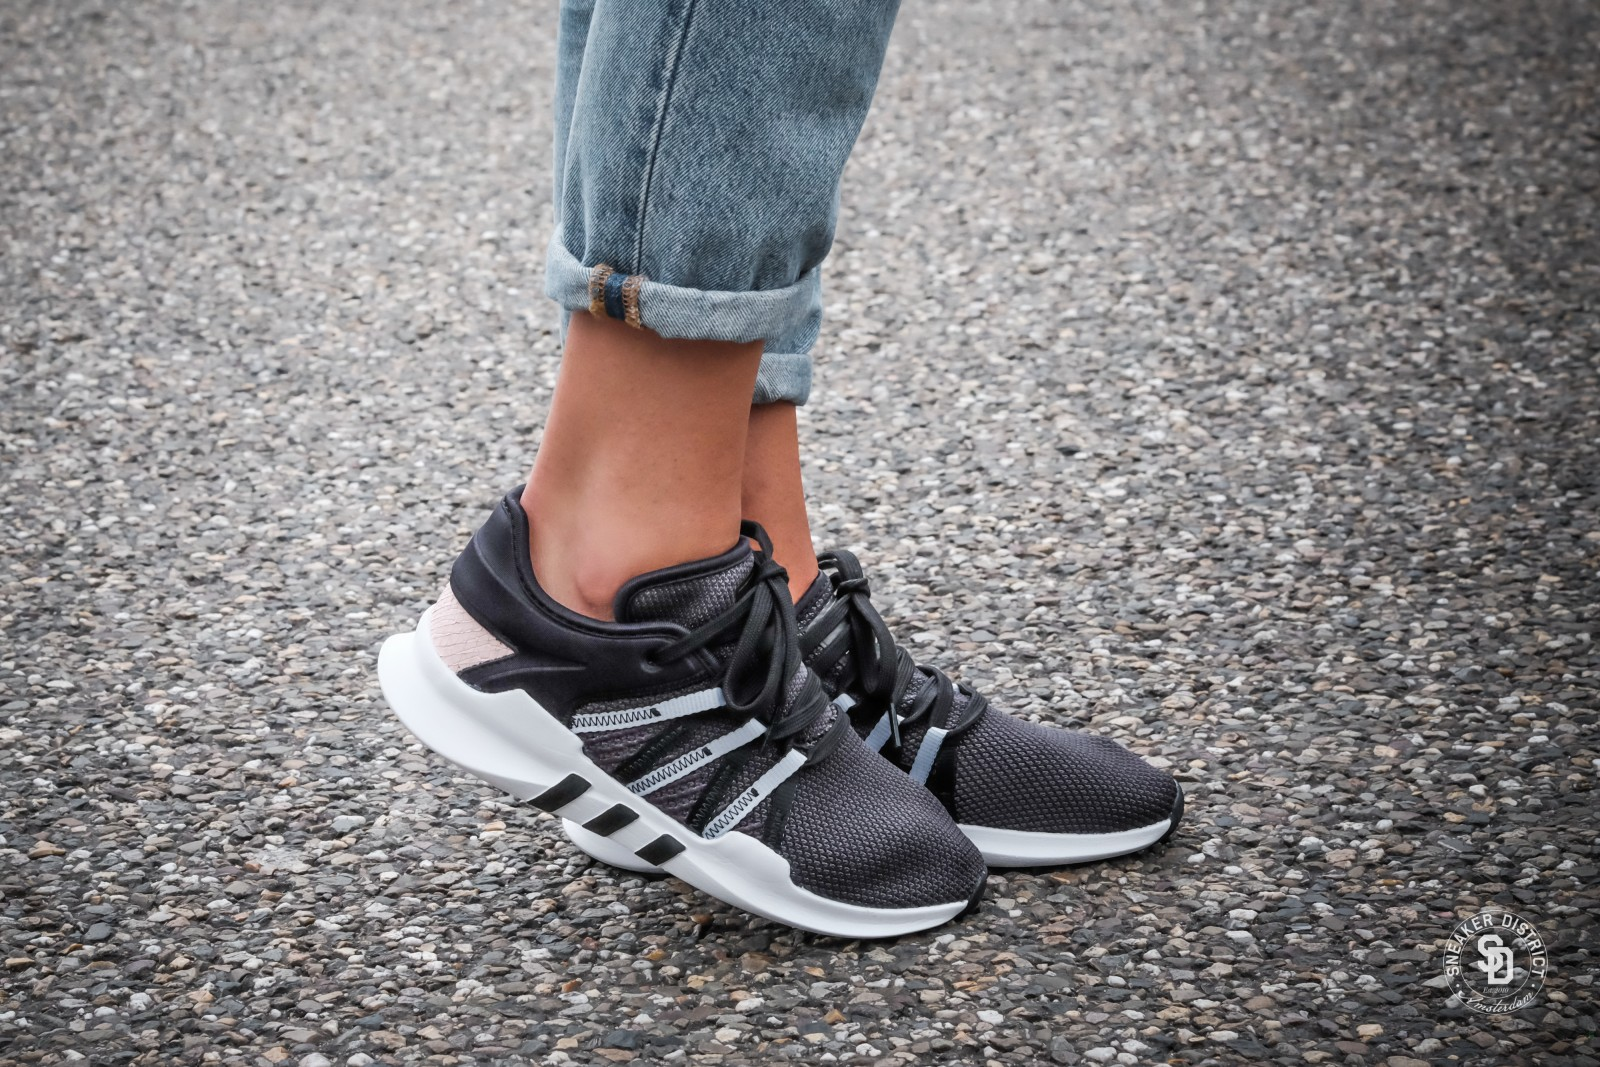 official photos dbbea eff23 adidas eqt racing core black